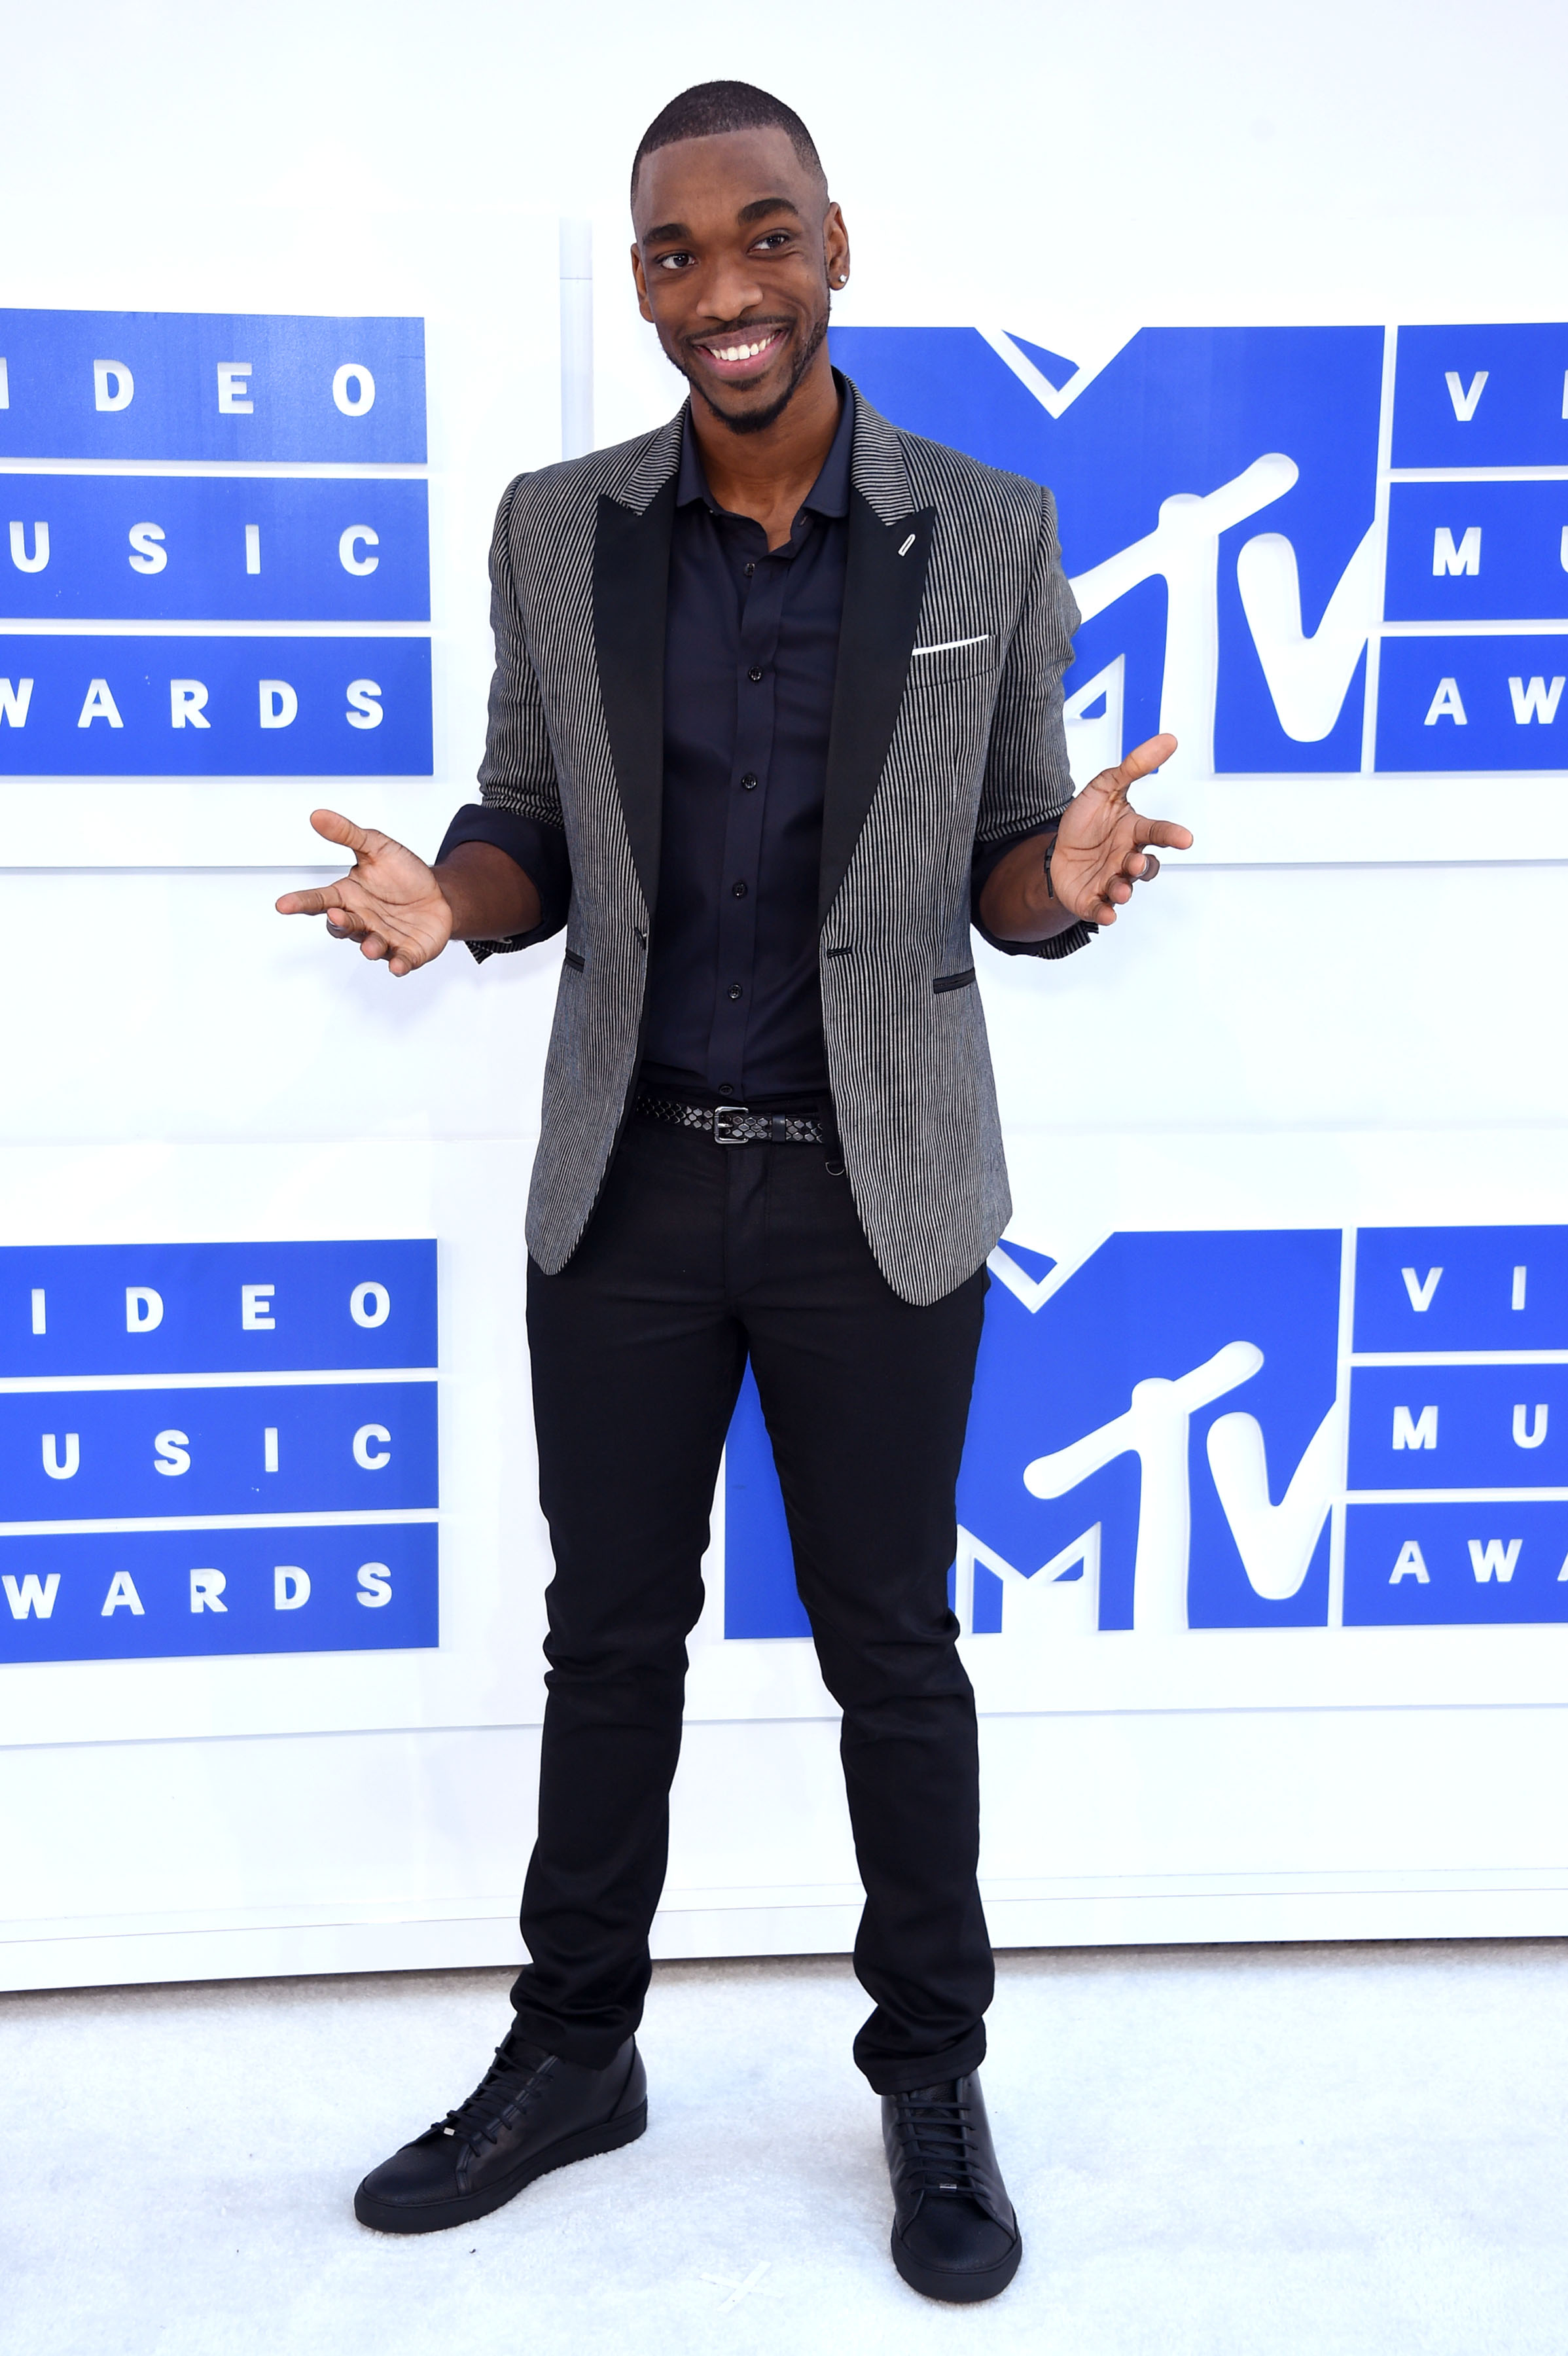 Jay Pharoah attends the 2016 MTV Video Music Awards at Madison Square Garden on Aug. 28, 2016 in New York City.